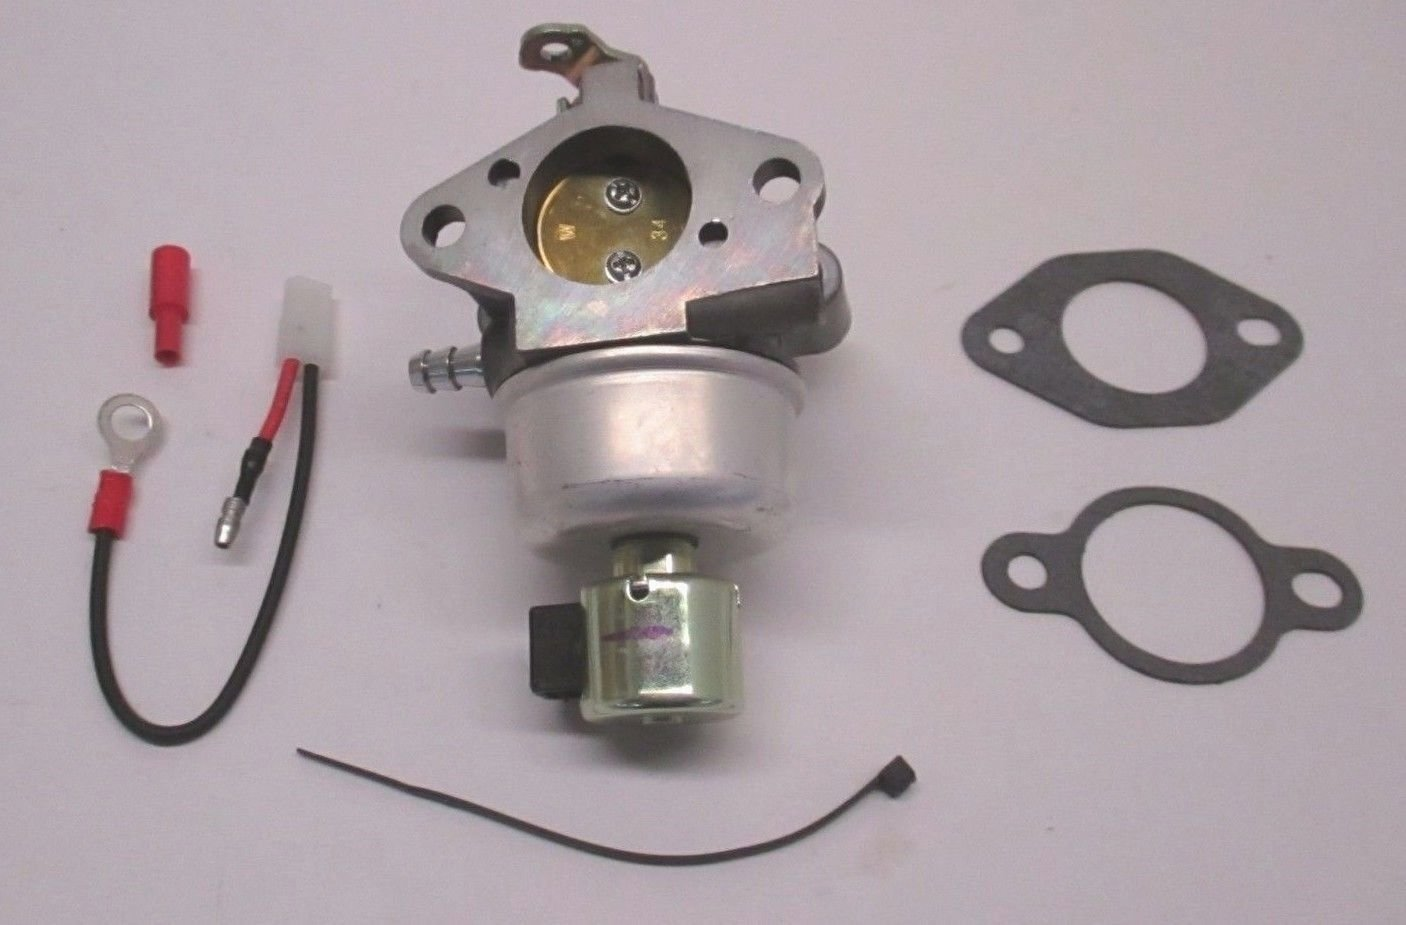 Kohler 12-853-118-S Lawn & Garden Equipment Engine Carburetor Genuine Original Equipment Manufacturer (OEM) Part